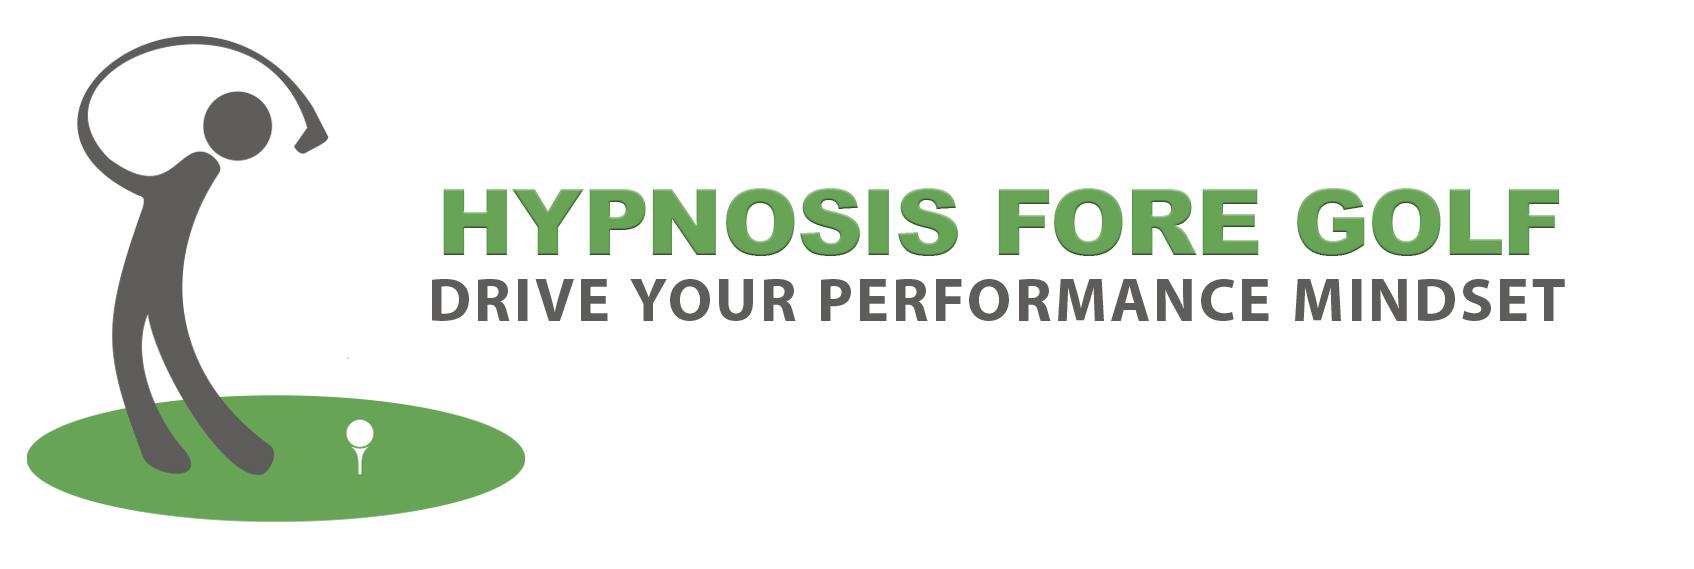 Hypnosis Fore Golf – A Group Hypnosis Session for Golf Performance post thumbnail image